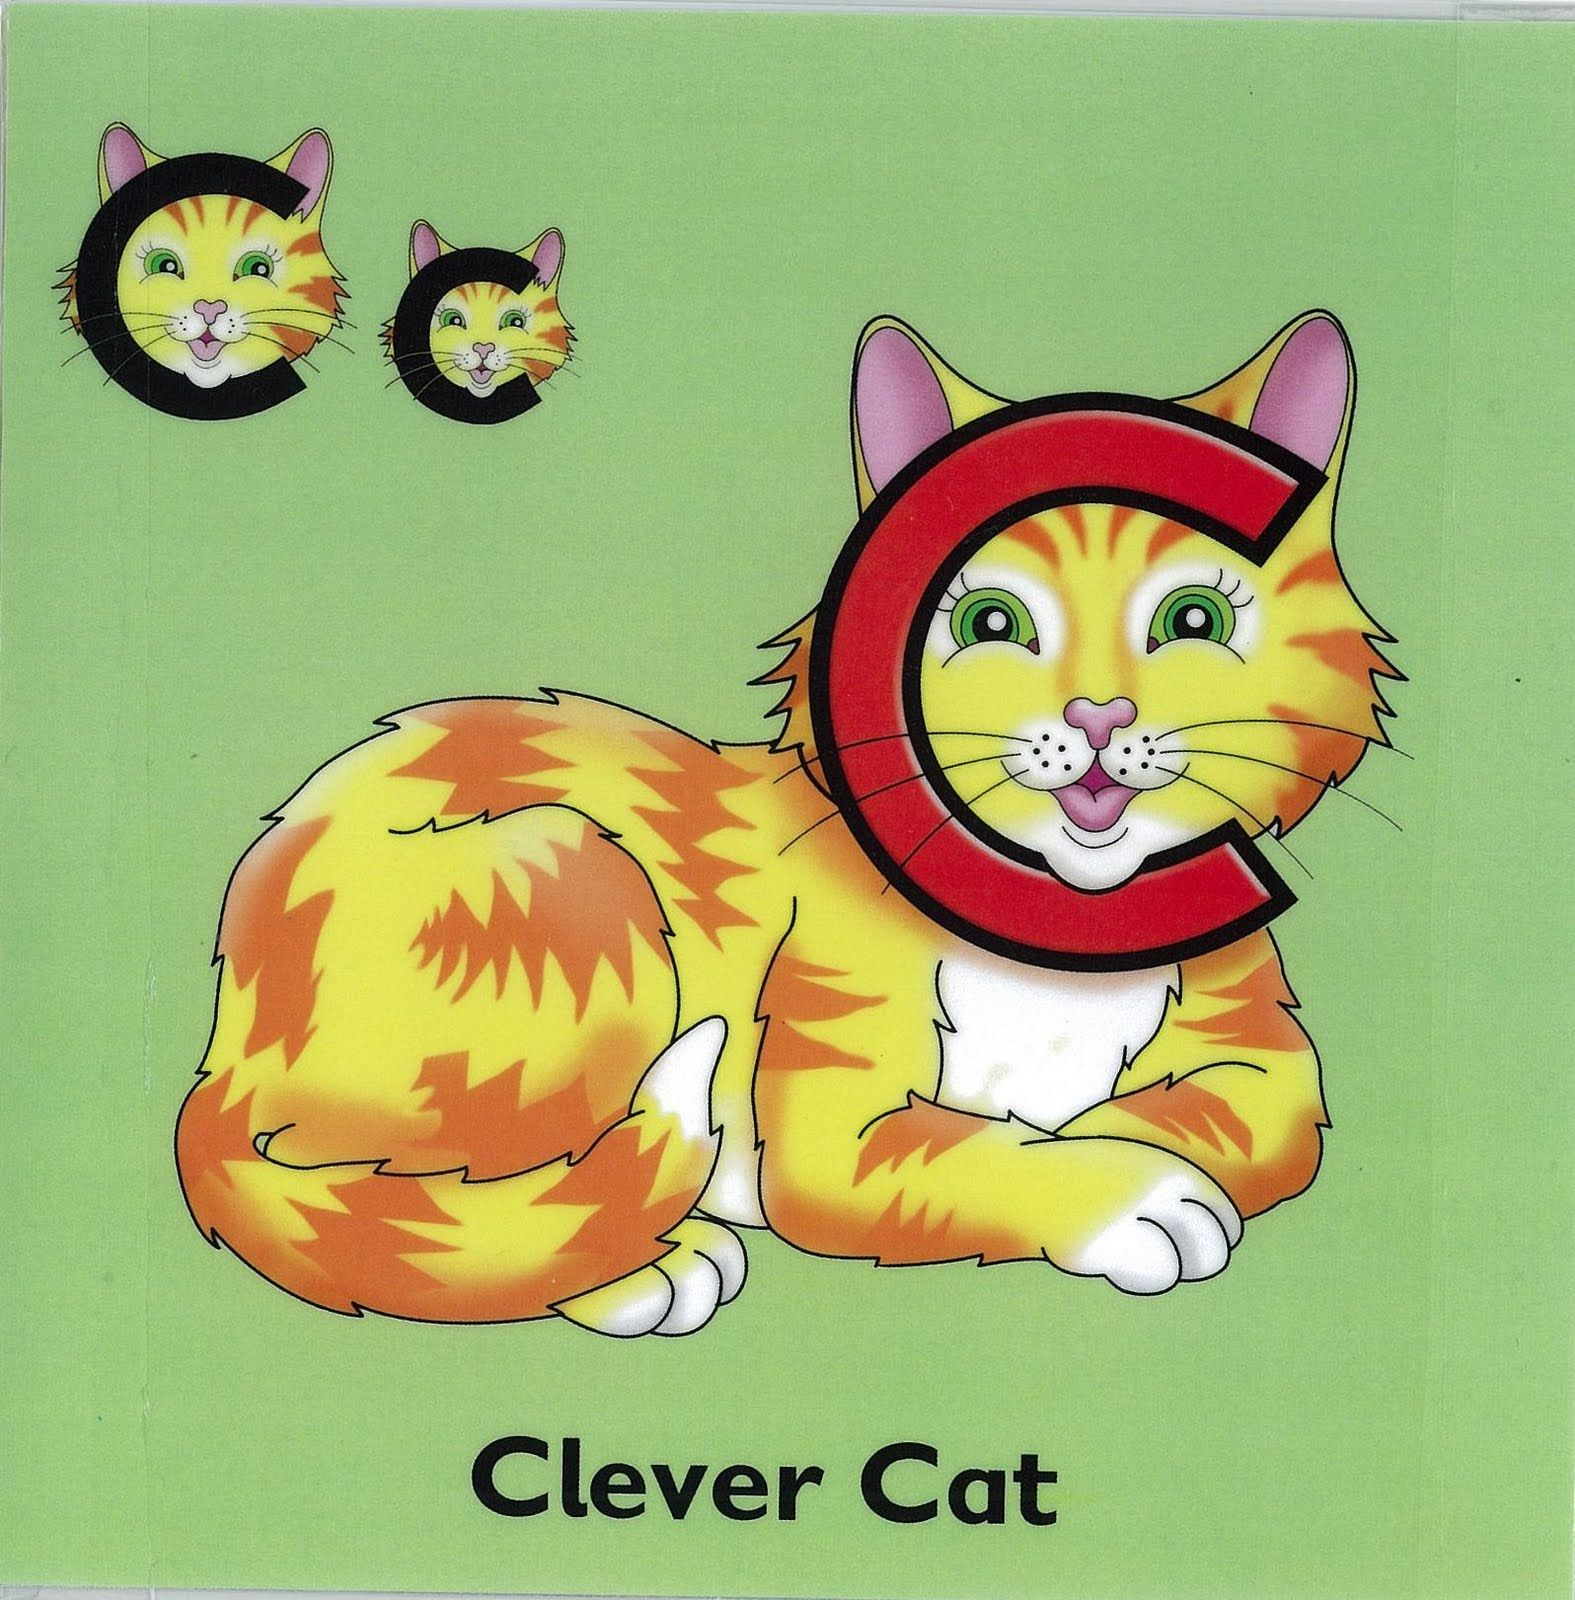 Clever Cat From Letterland